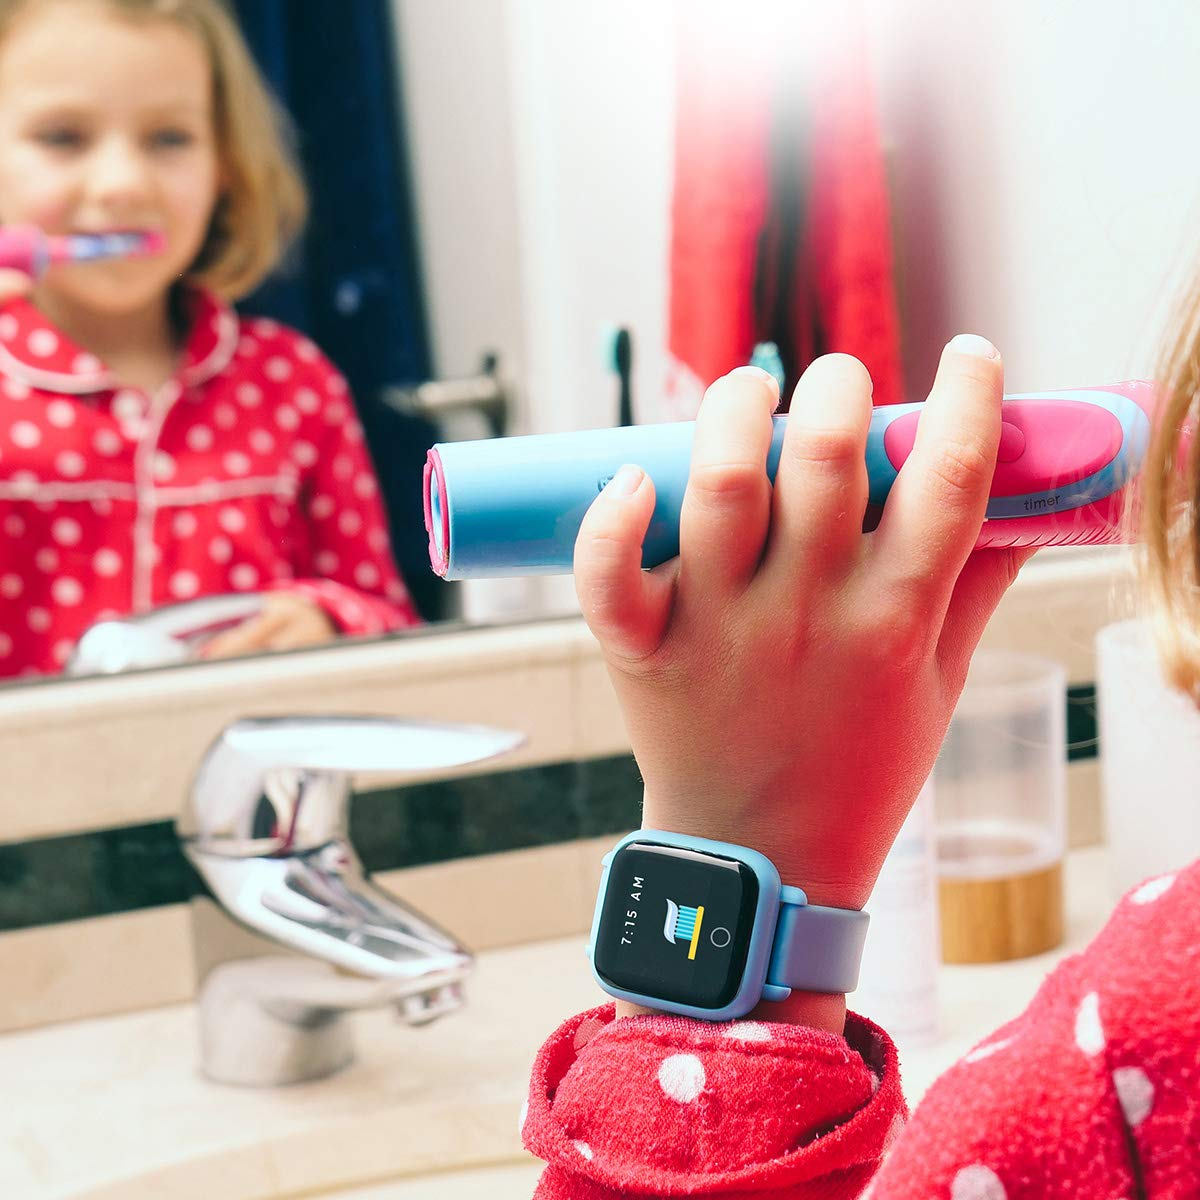 New! Octopus Watch v2 Motion Edition Teaches Kids Good Habits & Time - Encourages Active Play - The First Icon-Based Kids Smartwatch and Fitness Tracker (Blue) by Octopus by JOY (Image #4)